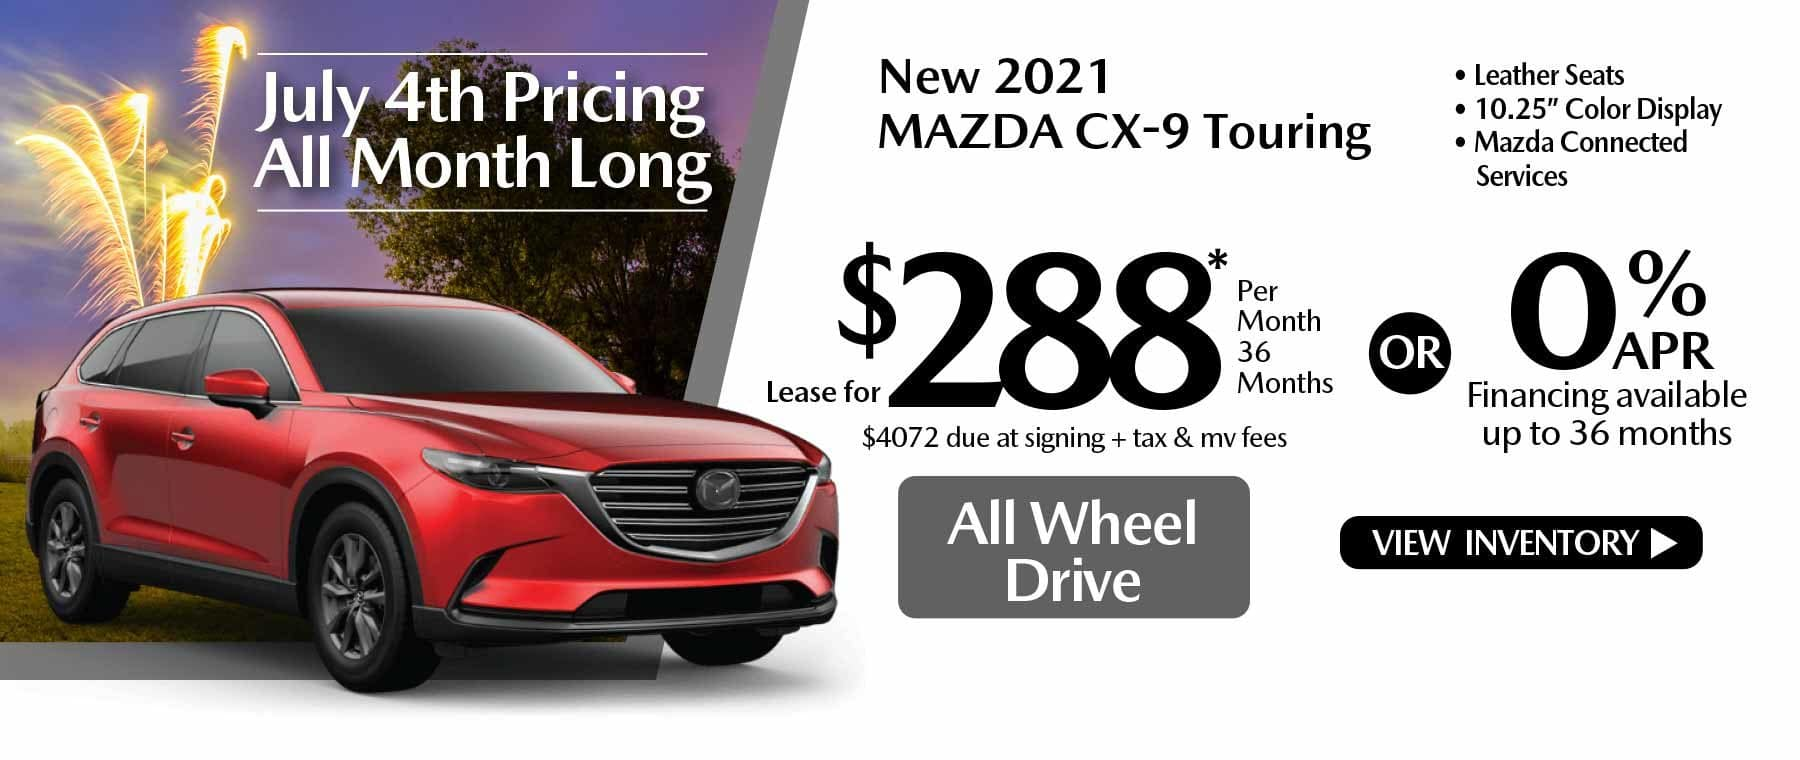 07 hi CX-9 New Lease Special Offer Mazda of New Rochelle NY